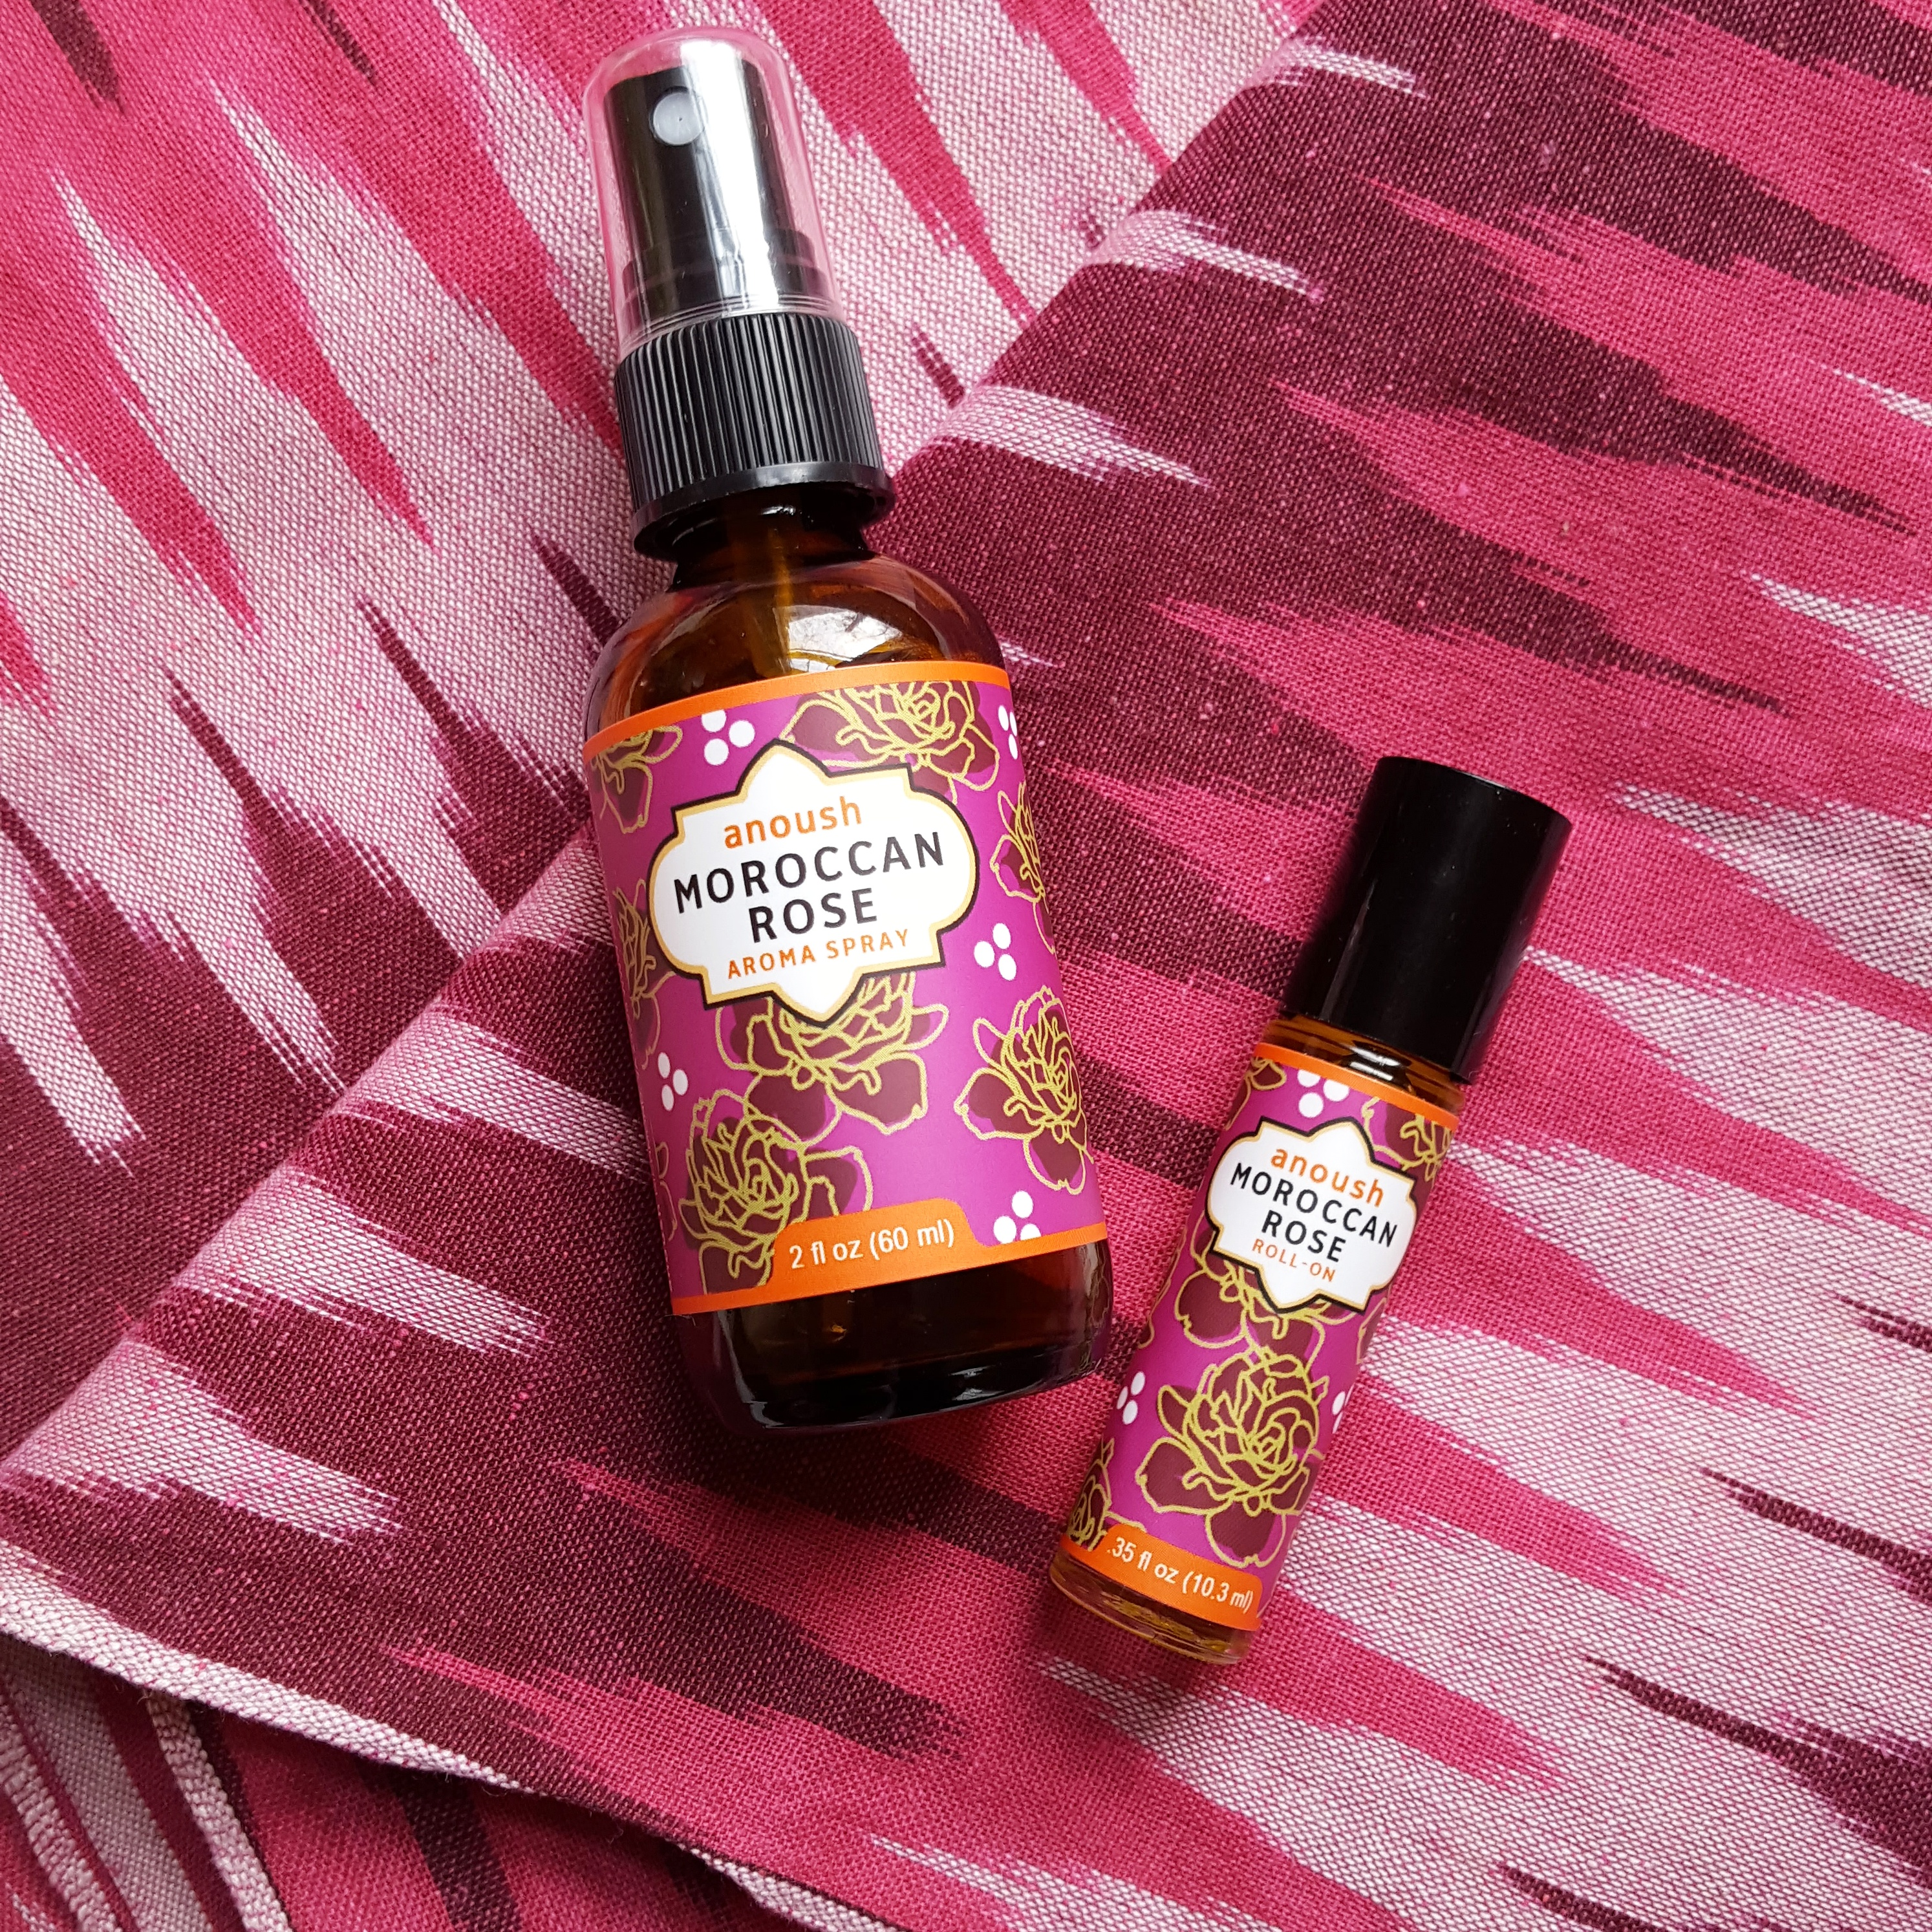 Moroccan Rose aromatherapy roll-on and spray